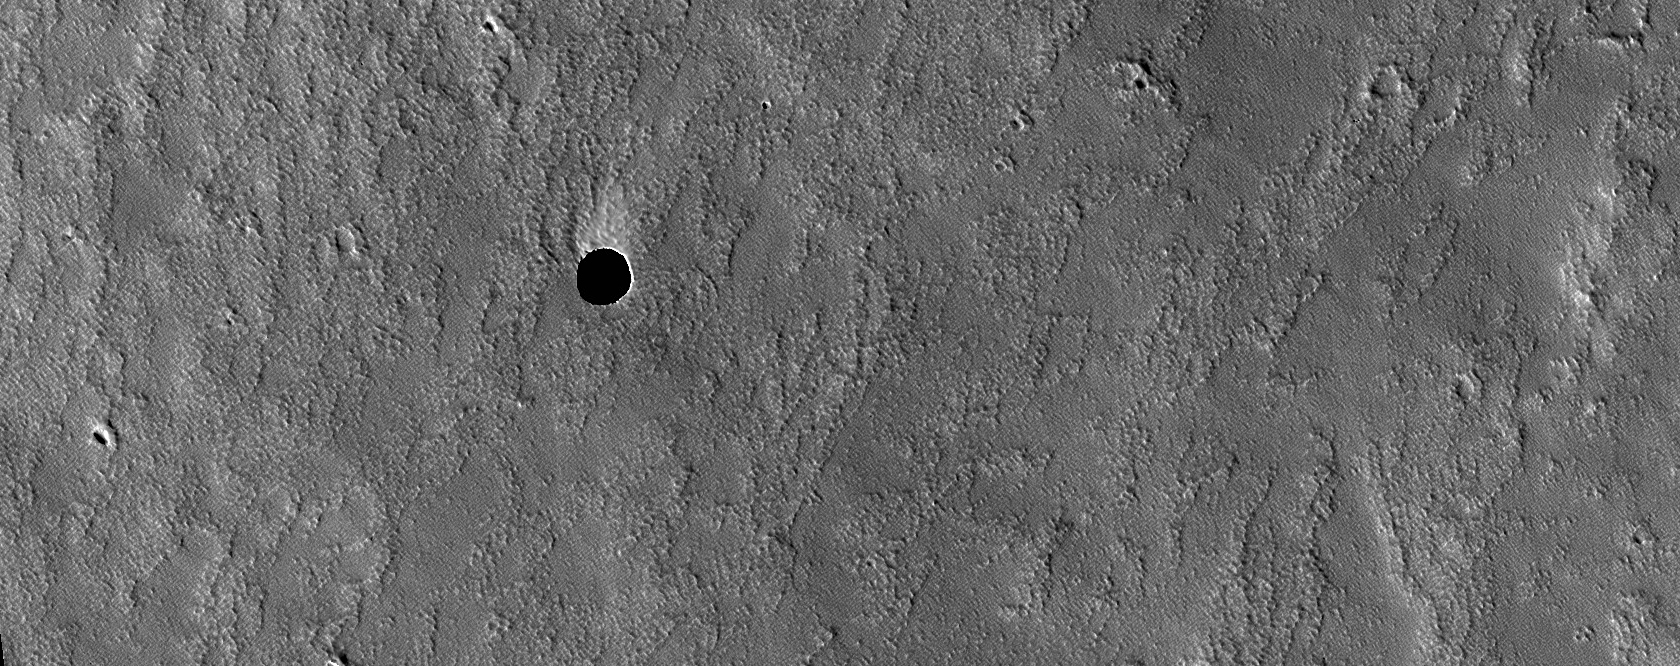 Candidate Cavern Entrance Northeast of Arsia Mons